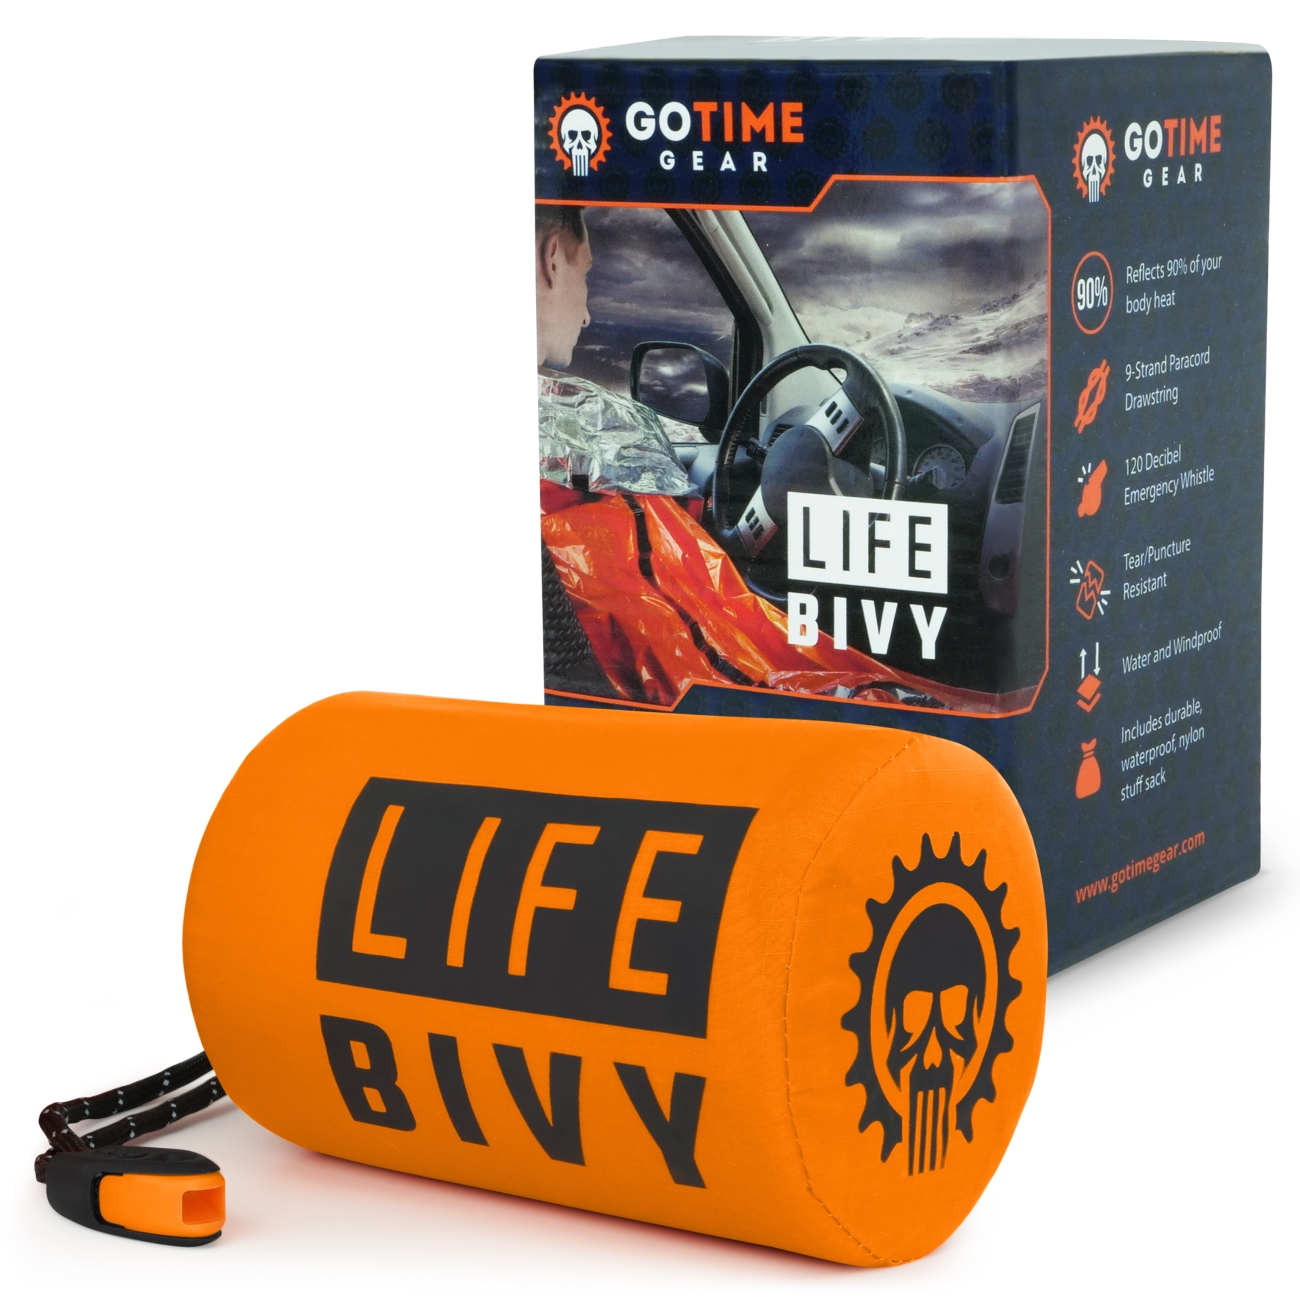 Click here to buy Life Bivy Emergency Sleeping Bag Thermal Bivvy Use as Emergency Bivy Bag, Survival Sleeping Bag, Mylar Emergency Blanket, Survival Gear... by Go Time Gear.